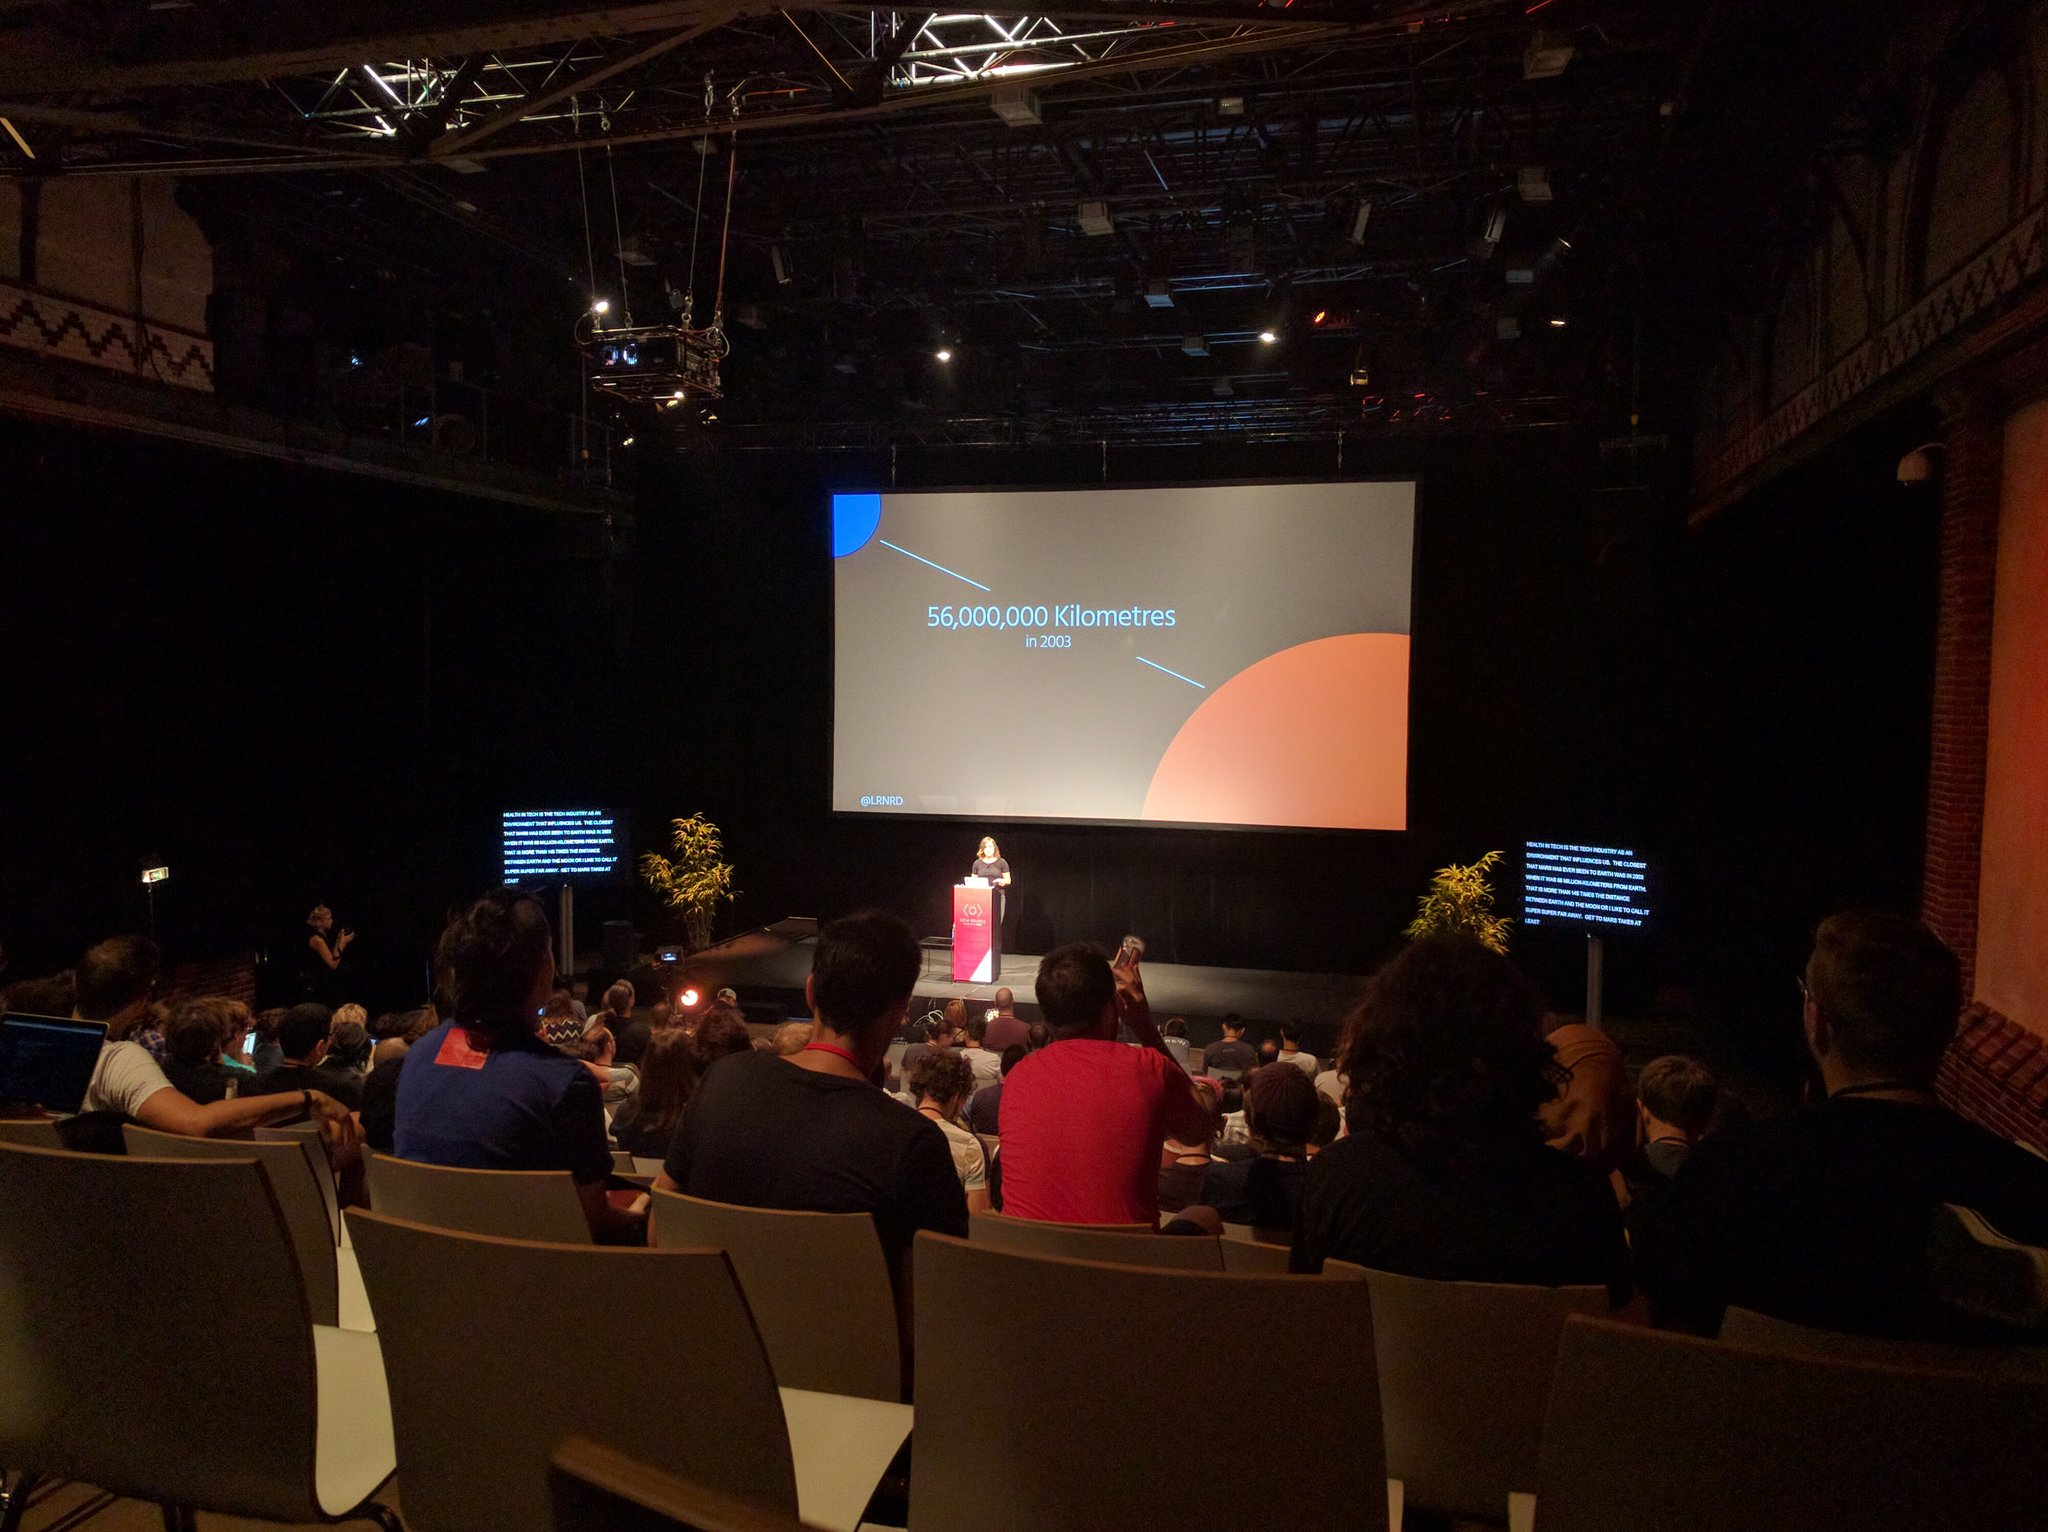 Opening the second day at #viewsource ➡ @lrnrd  about Existing in Tech! https://t.co/gJJ4R3qDkm